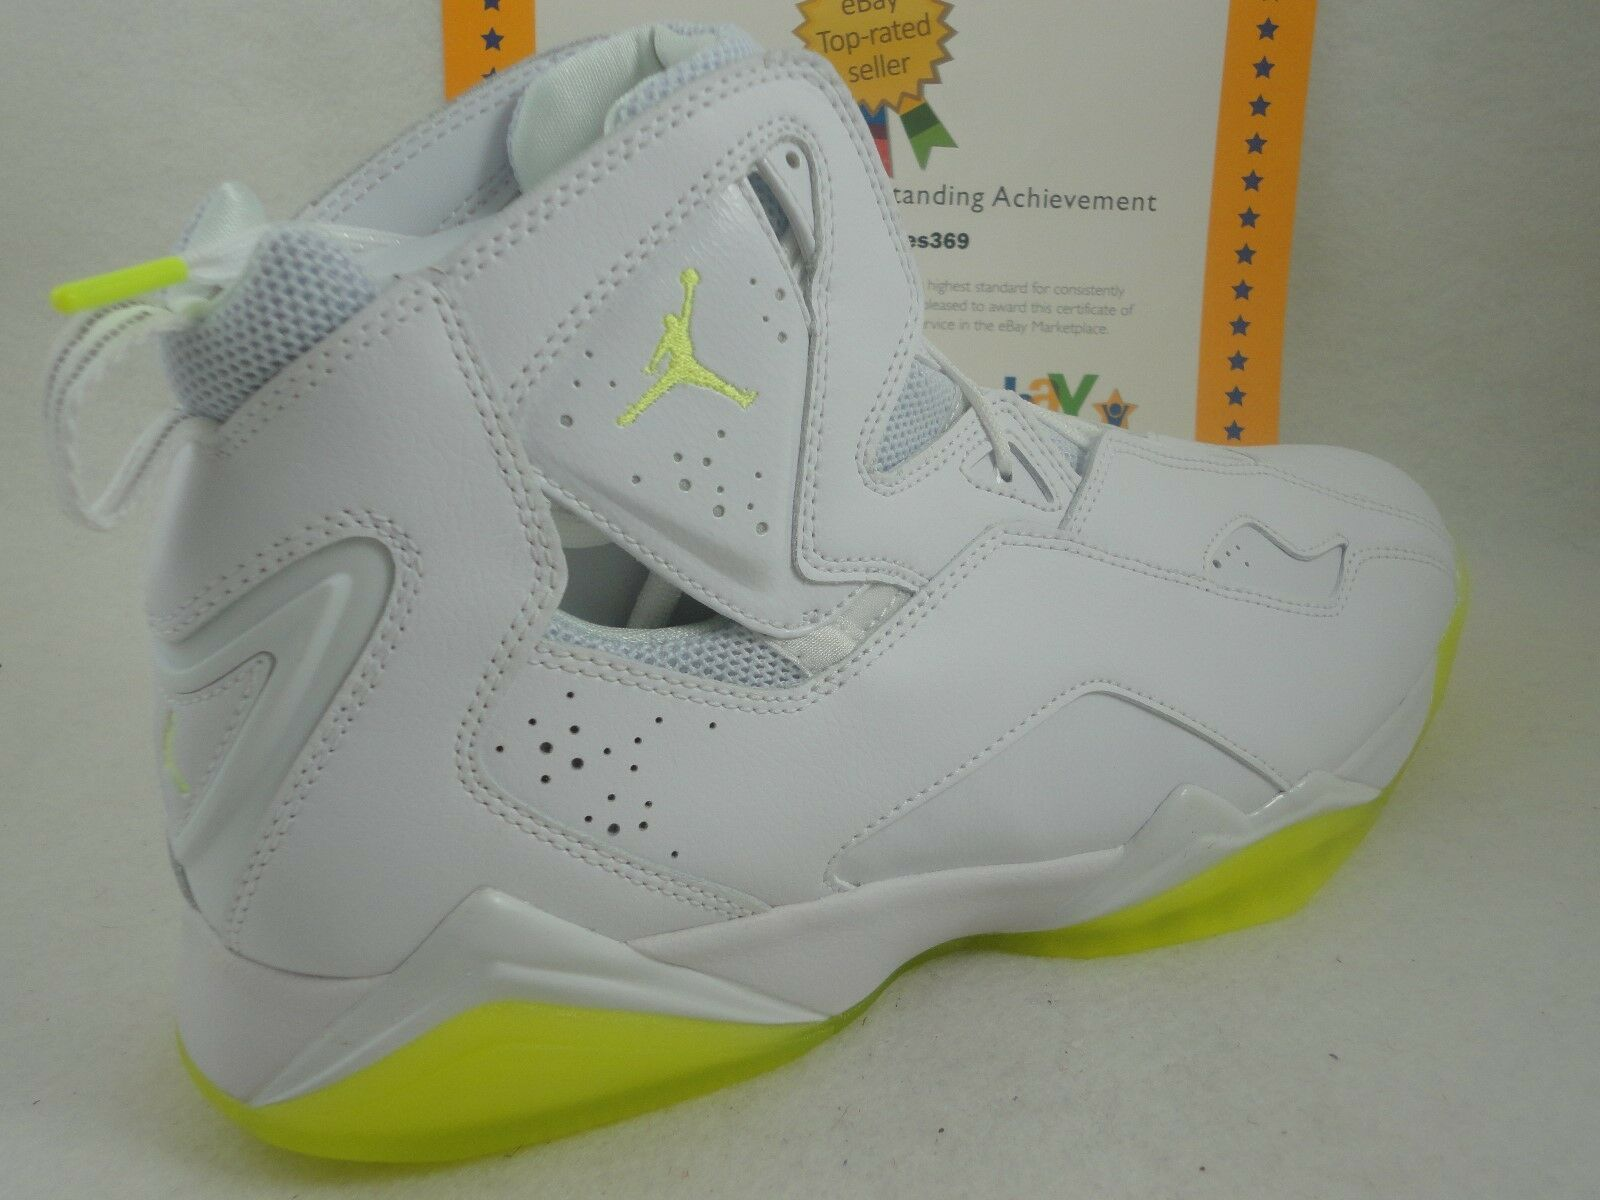 Nike Jordan True Flight, White   Volt Ice, Sz 14